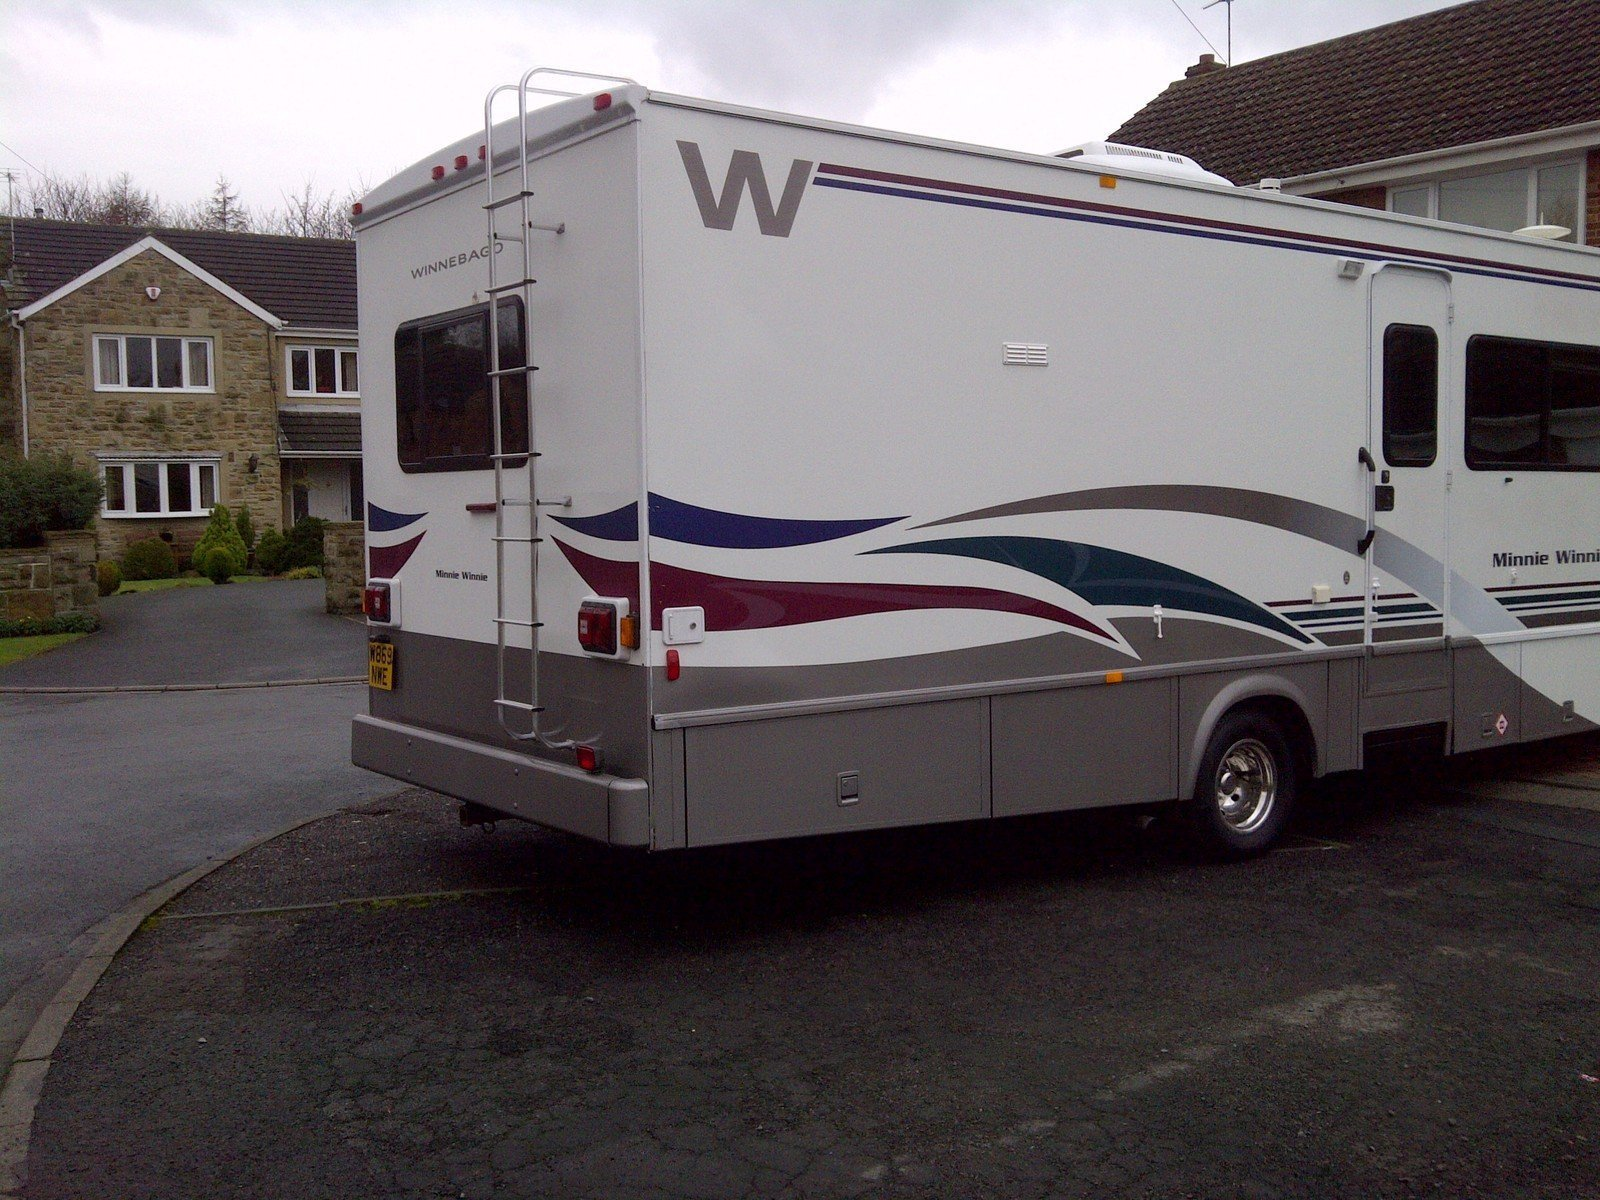 Luxury This 70M Is Built On The MercedesBenz Sprinter Chassis And Has A 30L 6cylinder Diesel Engine This All New Winnebago Minnie WinnieSprit Floorplan Features Triple Slideouts Including Opposing Front Slides Which Maximize